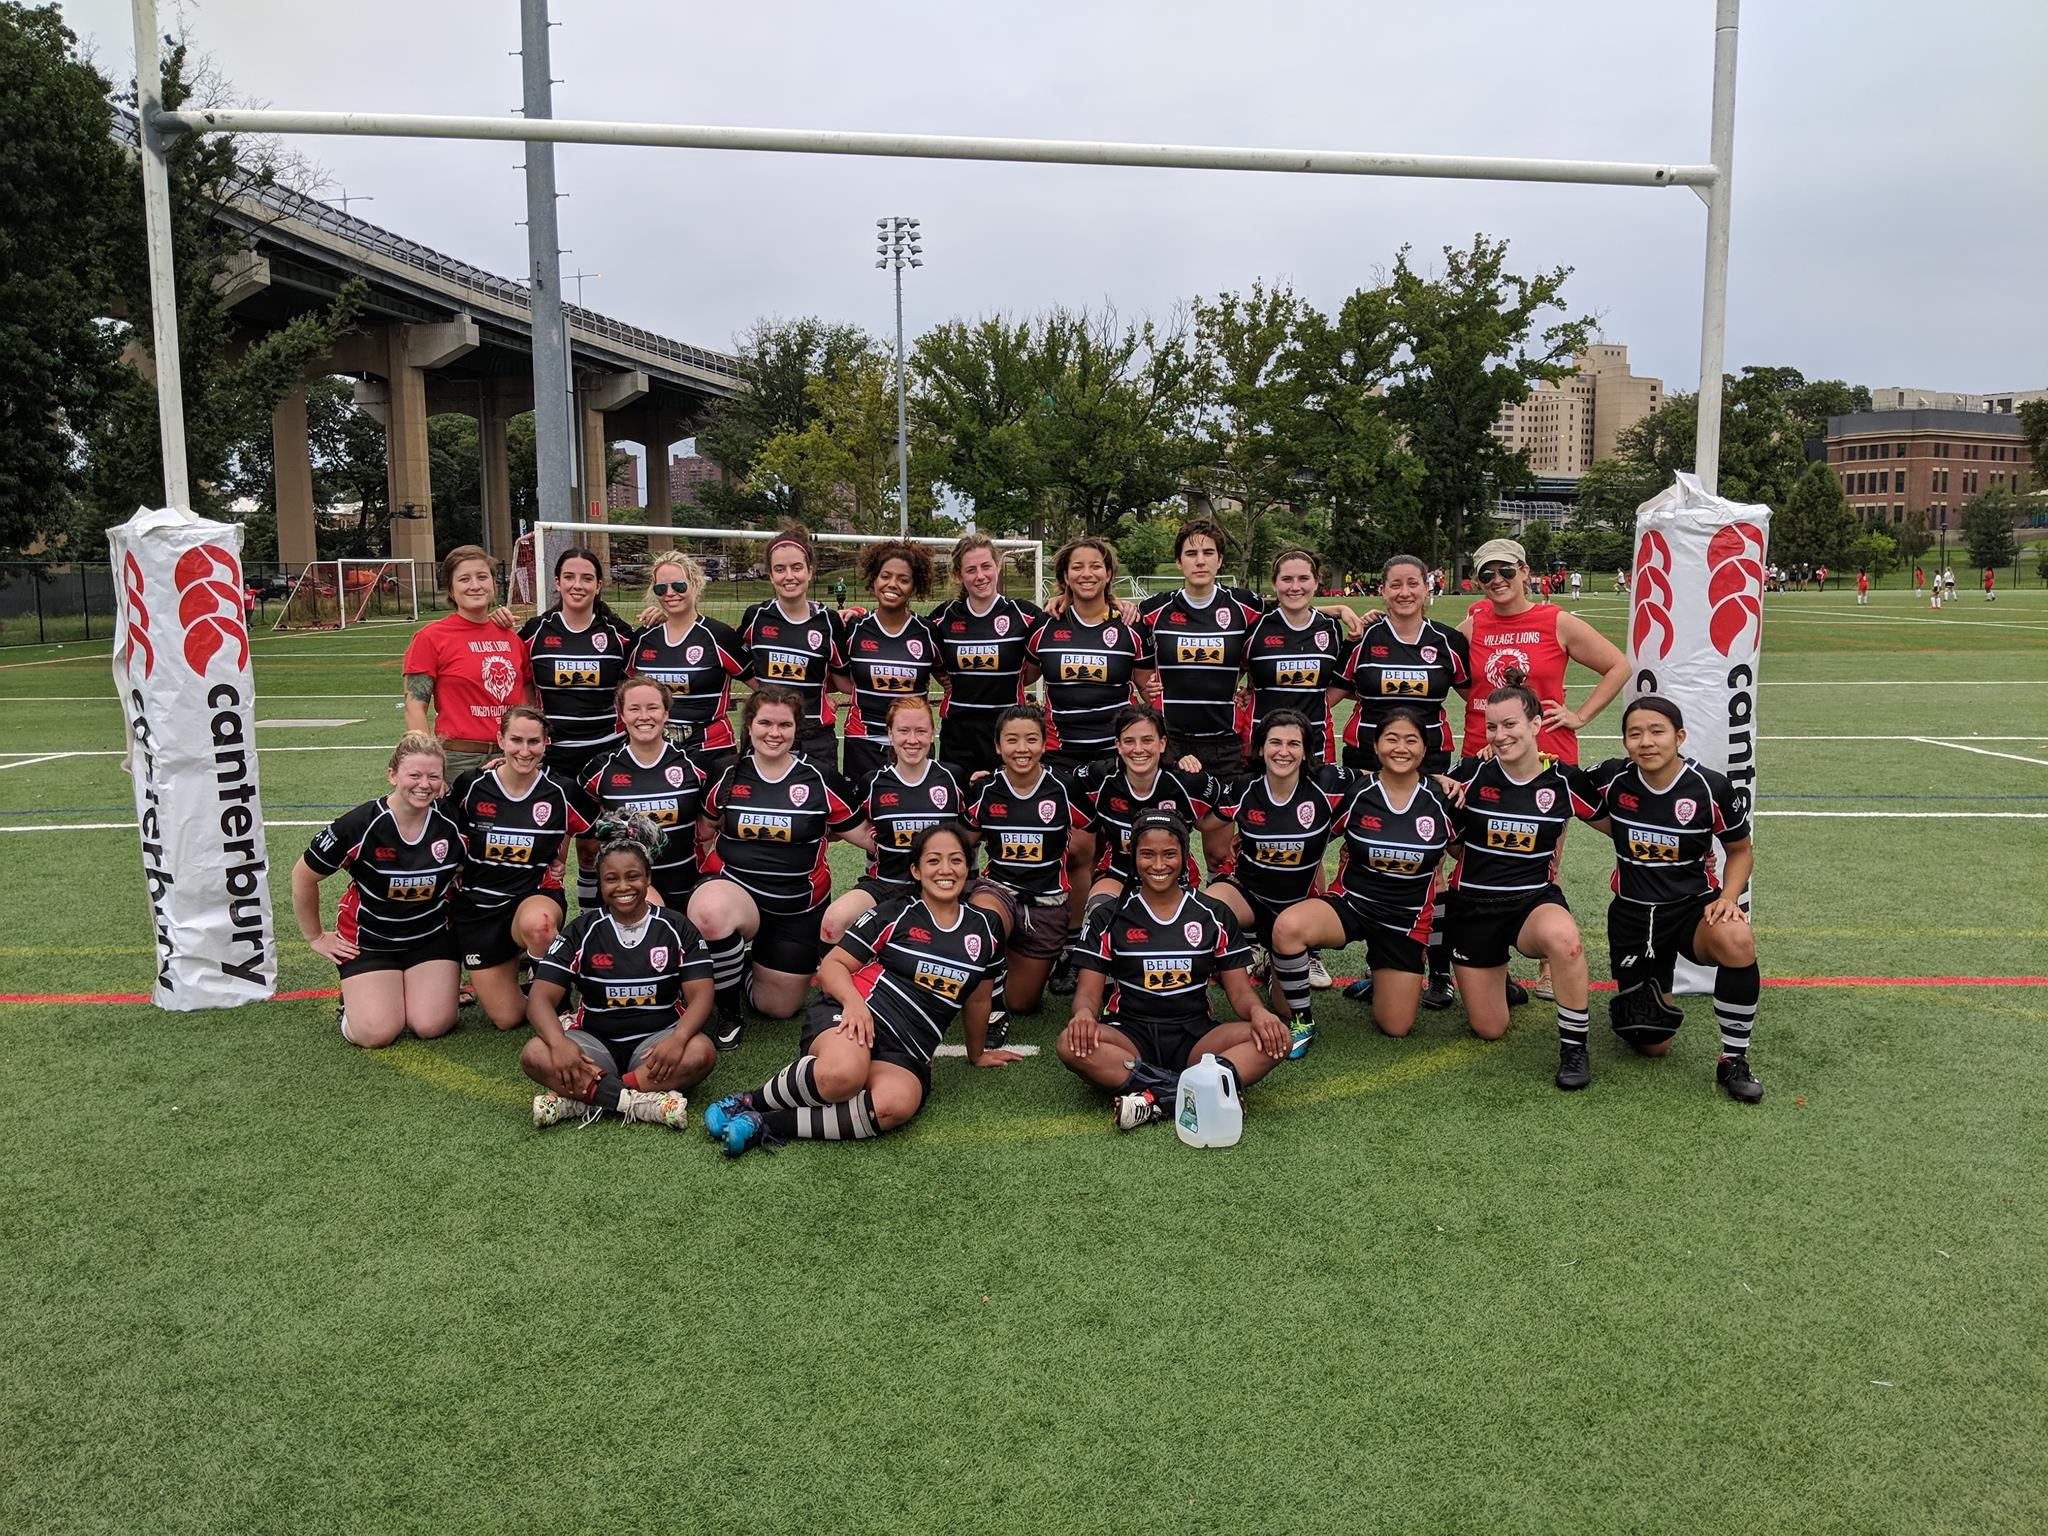 Wanted Village Lions Rfc Nyc Womens 15s Head Coach Yscrugby